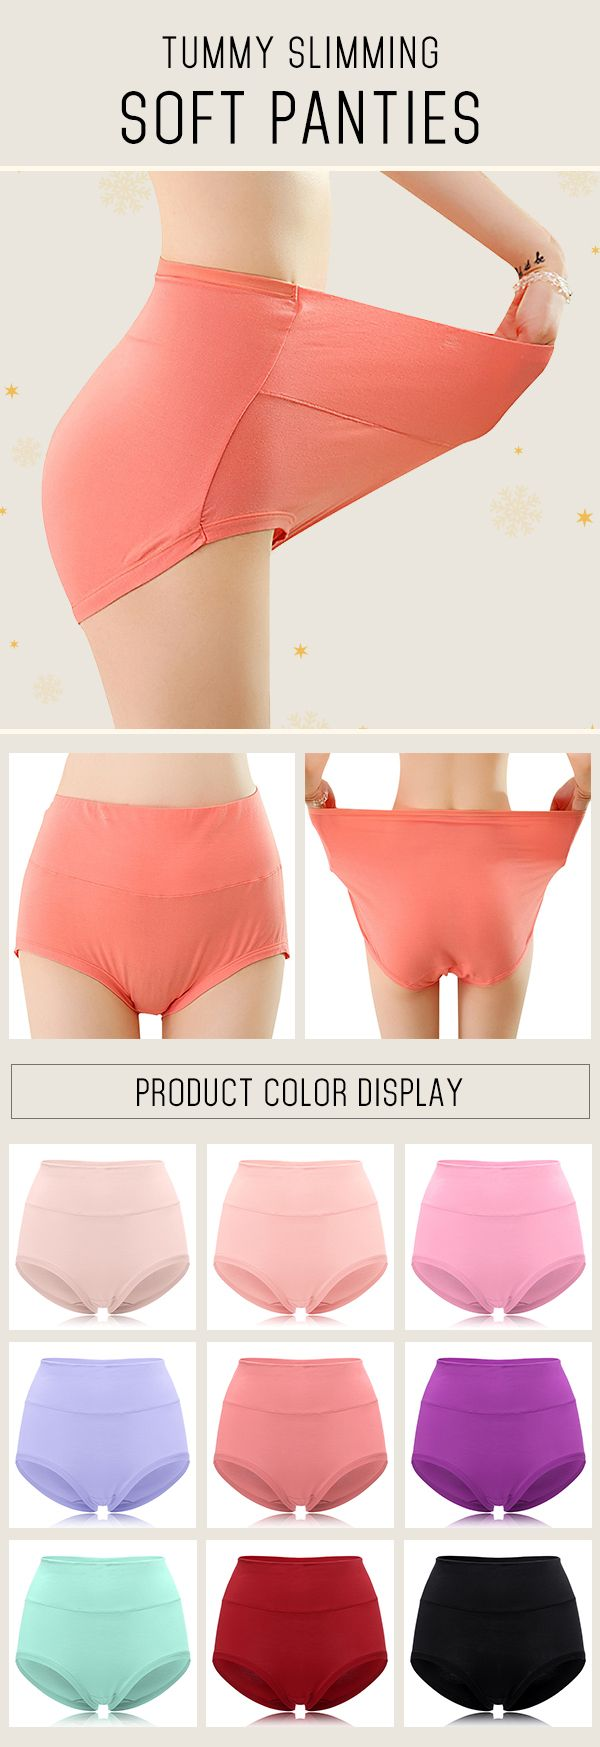 Modal High Waisted Solid Color Tummy Slimming Soft Panties #fashion #style #panties